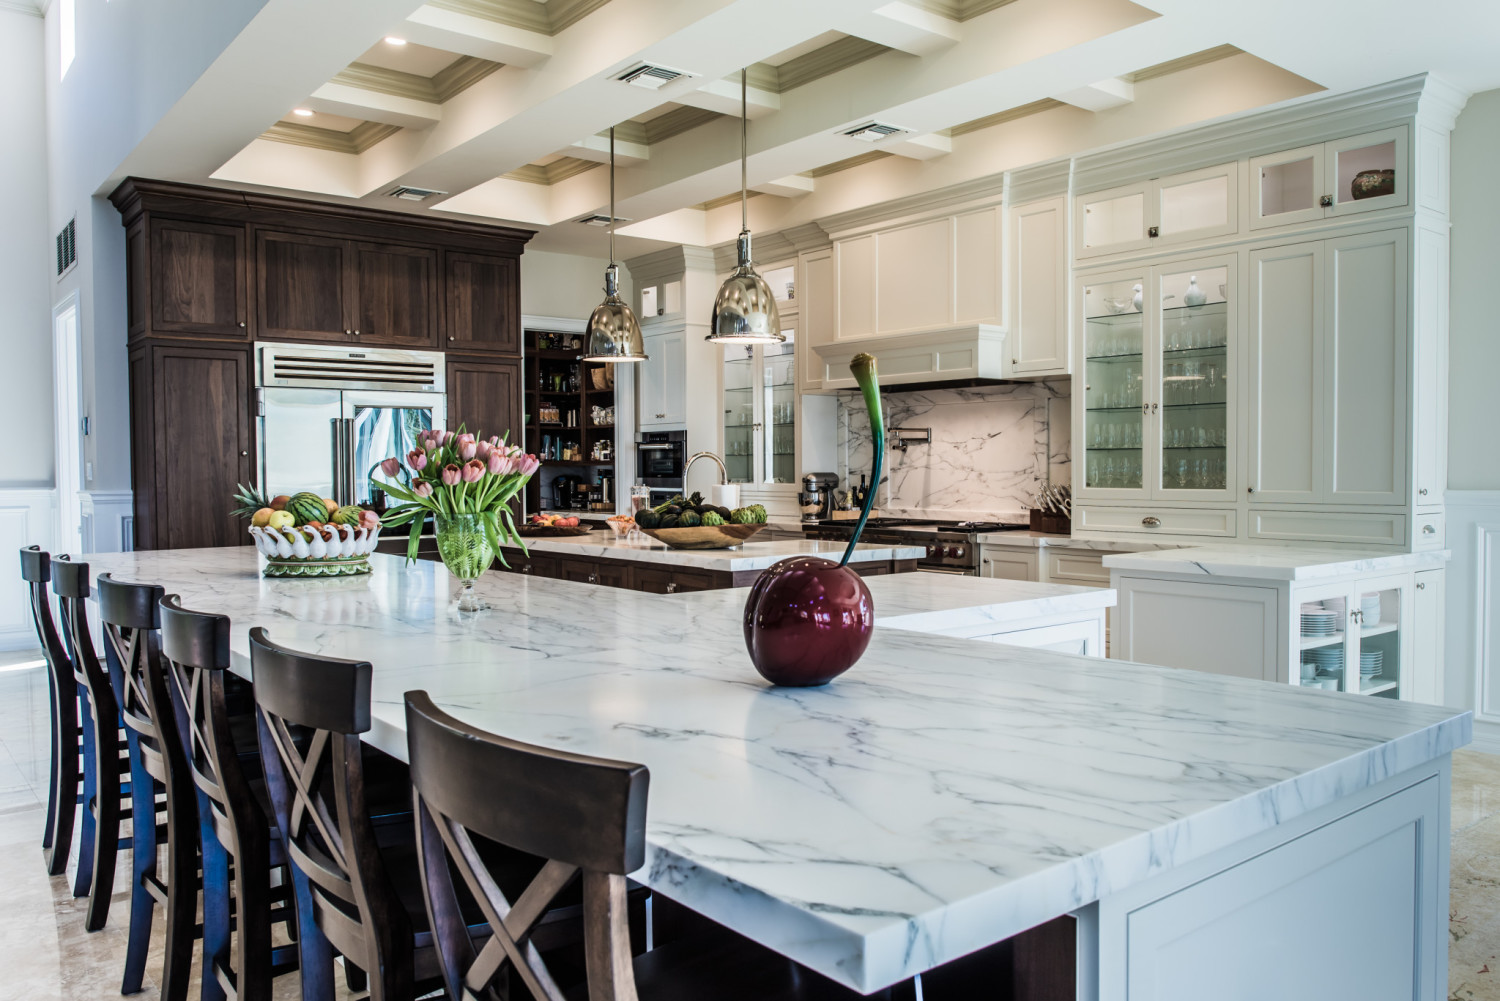 Delicieux Frosty White Inset Cabinetry/ Walnut Refrigerator Wall Carrera Marble  Countertops